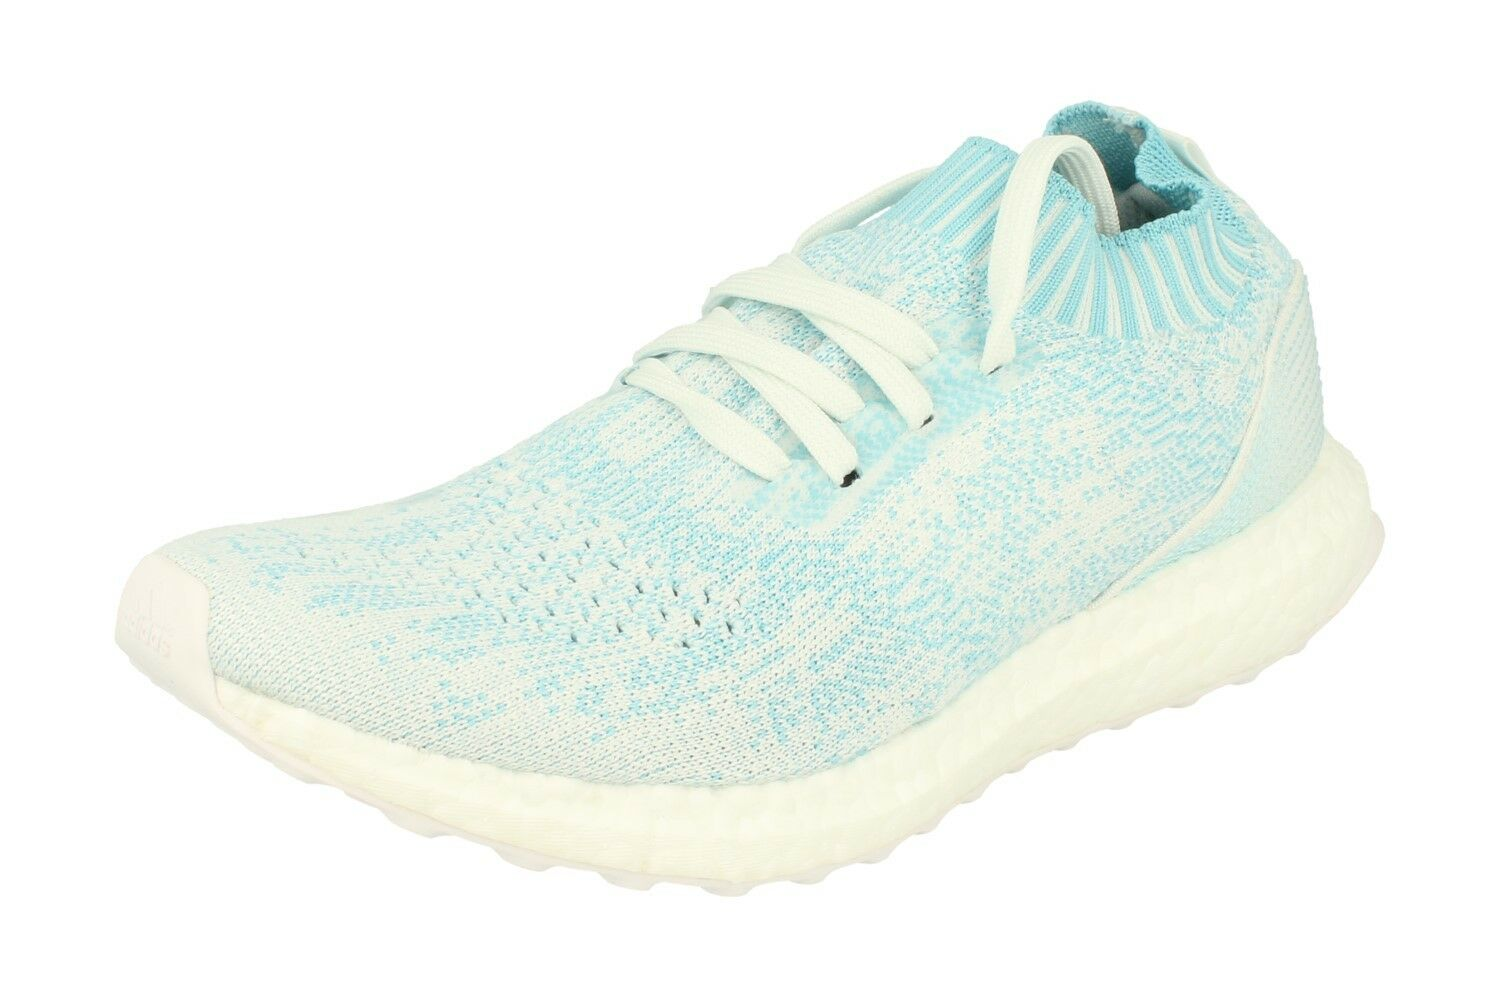 Adidas Ultraboost Uncaged Parley Mens Running Trainers CP9686 Turnschuhe schuhe